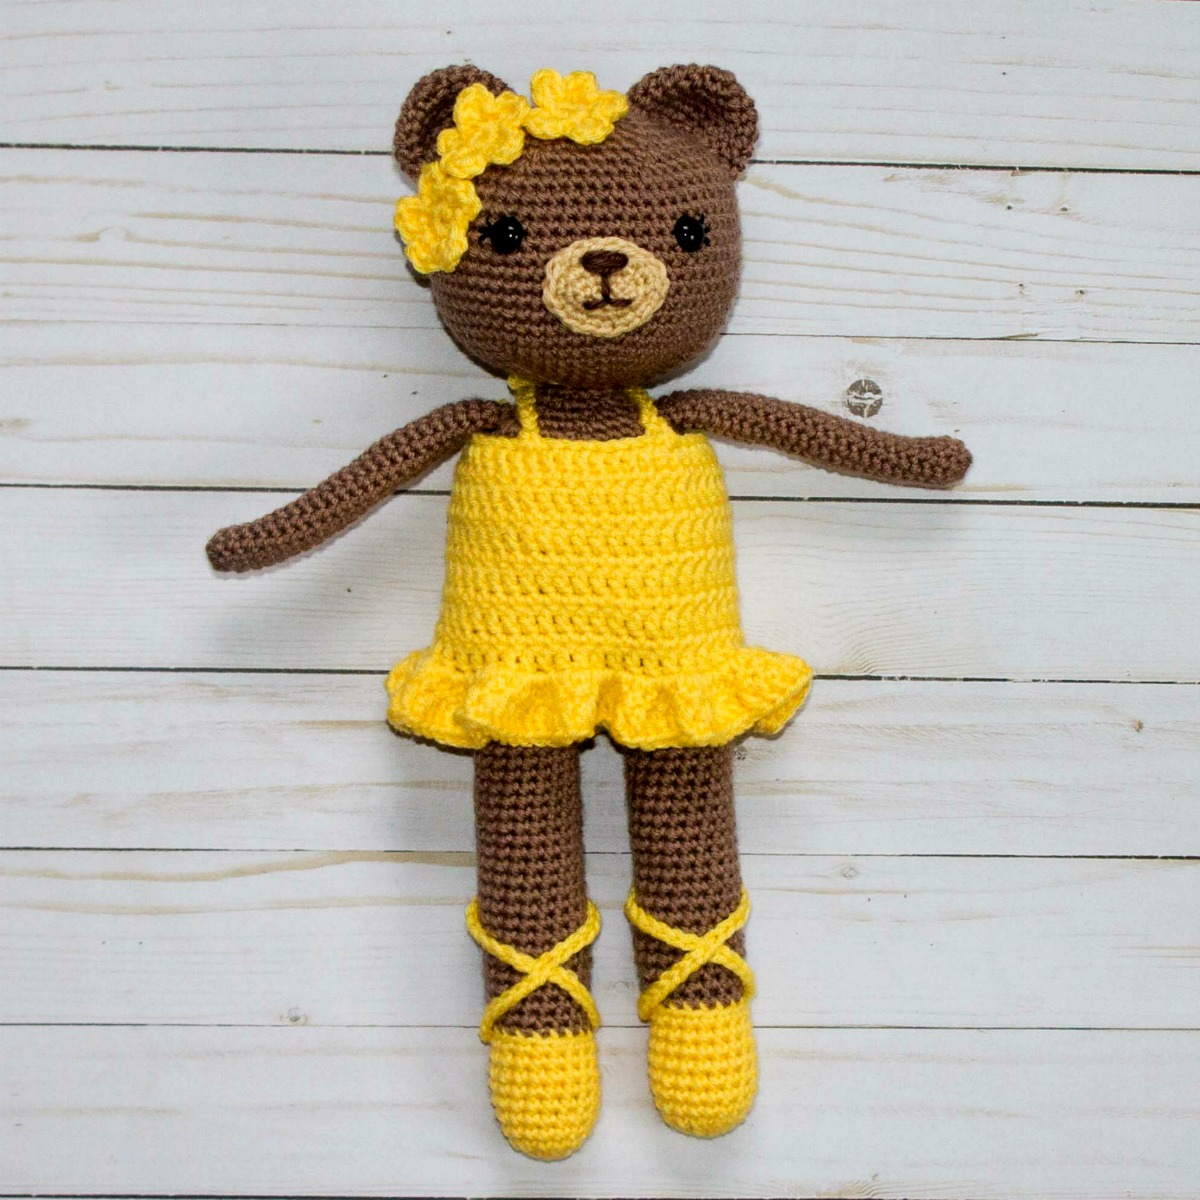 Crochet Ballerina Bear Free Pattern : Free Crochet Bear Ballerina Pattern - The Friendly Red Fox